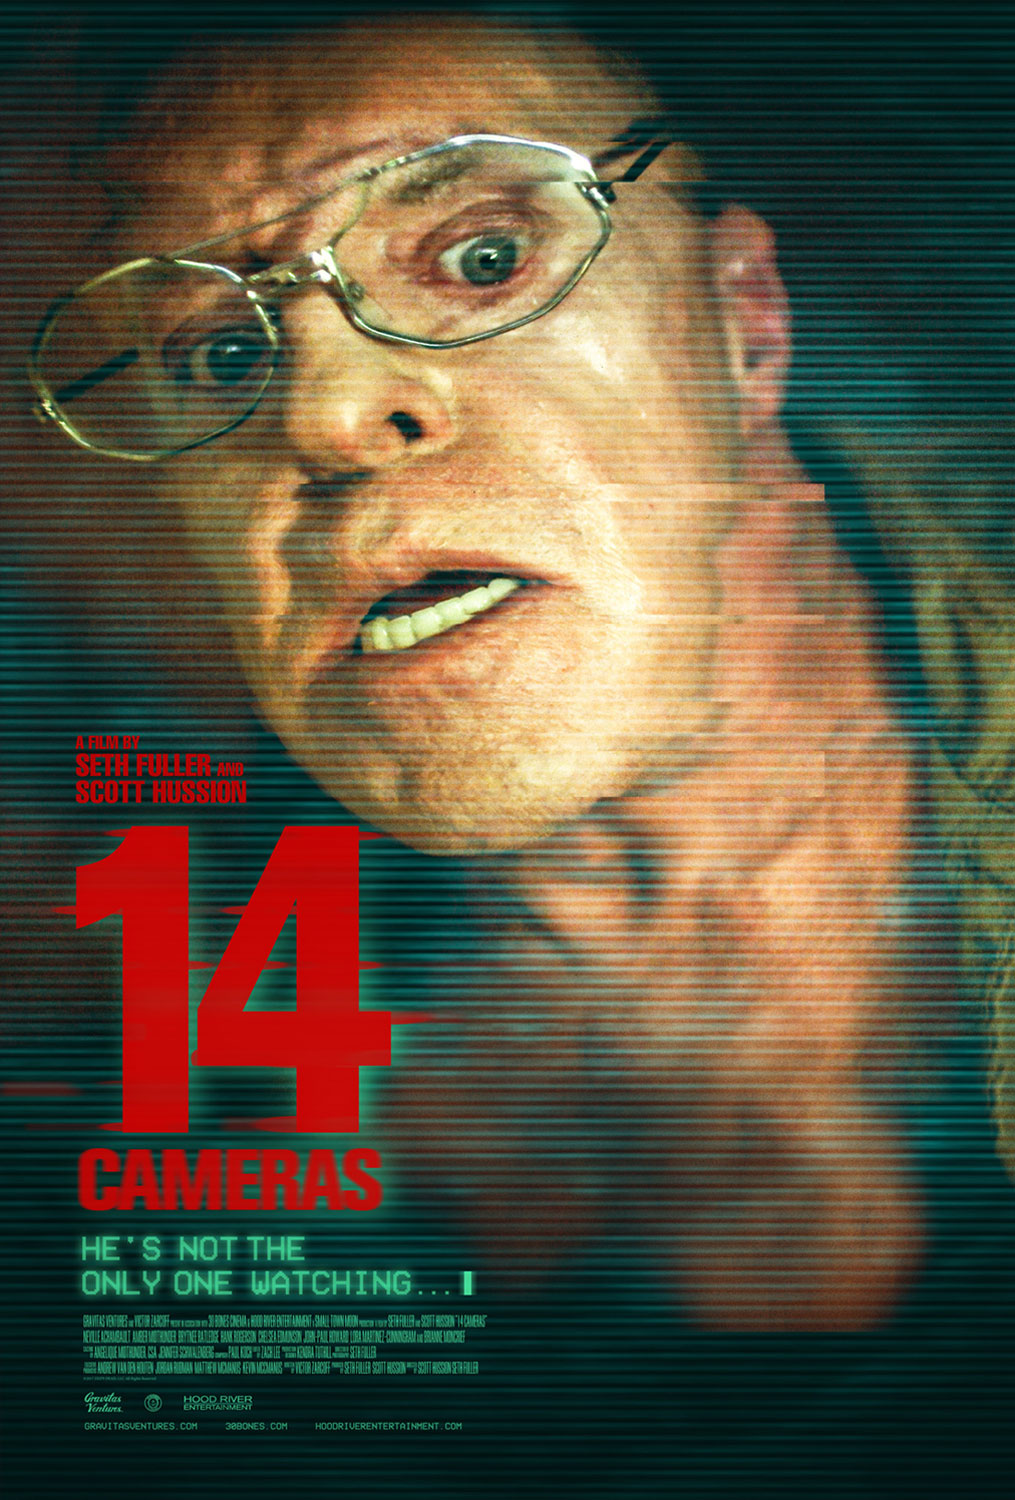 79thbroadway_14_cameras_movie_poster.jpg